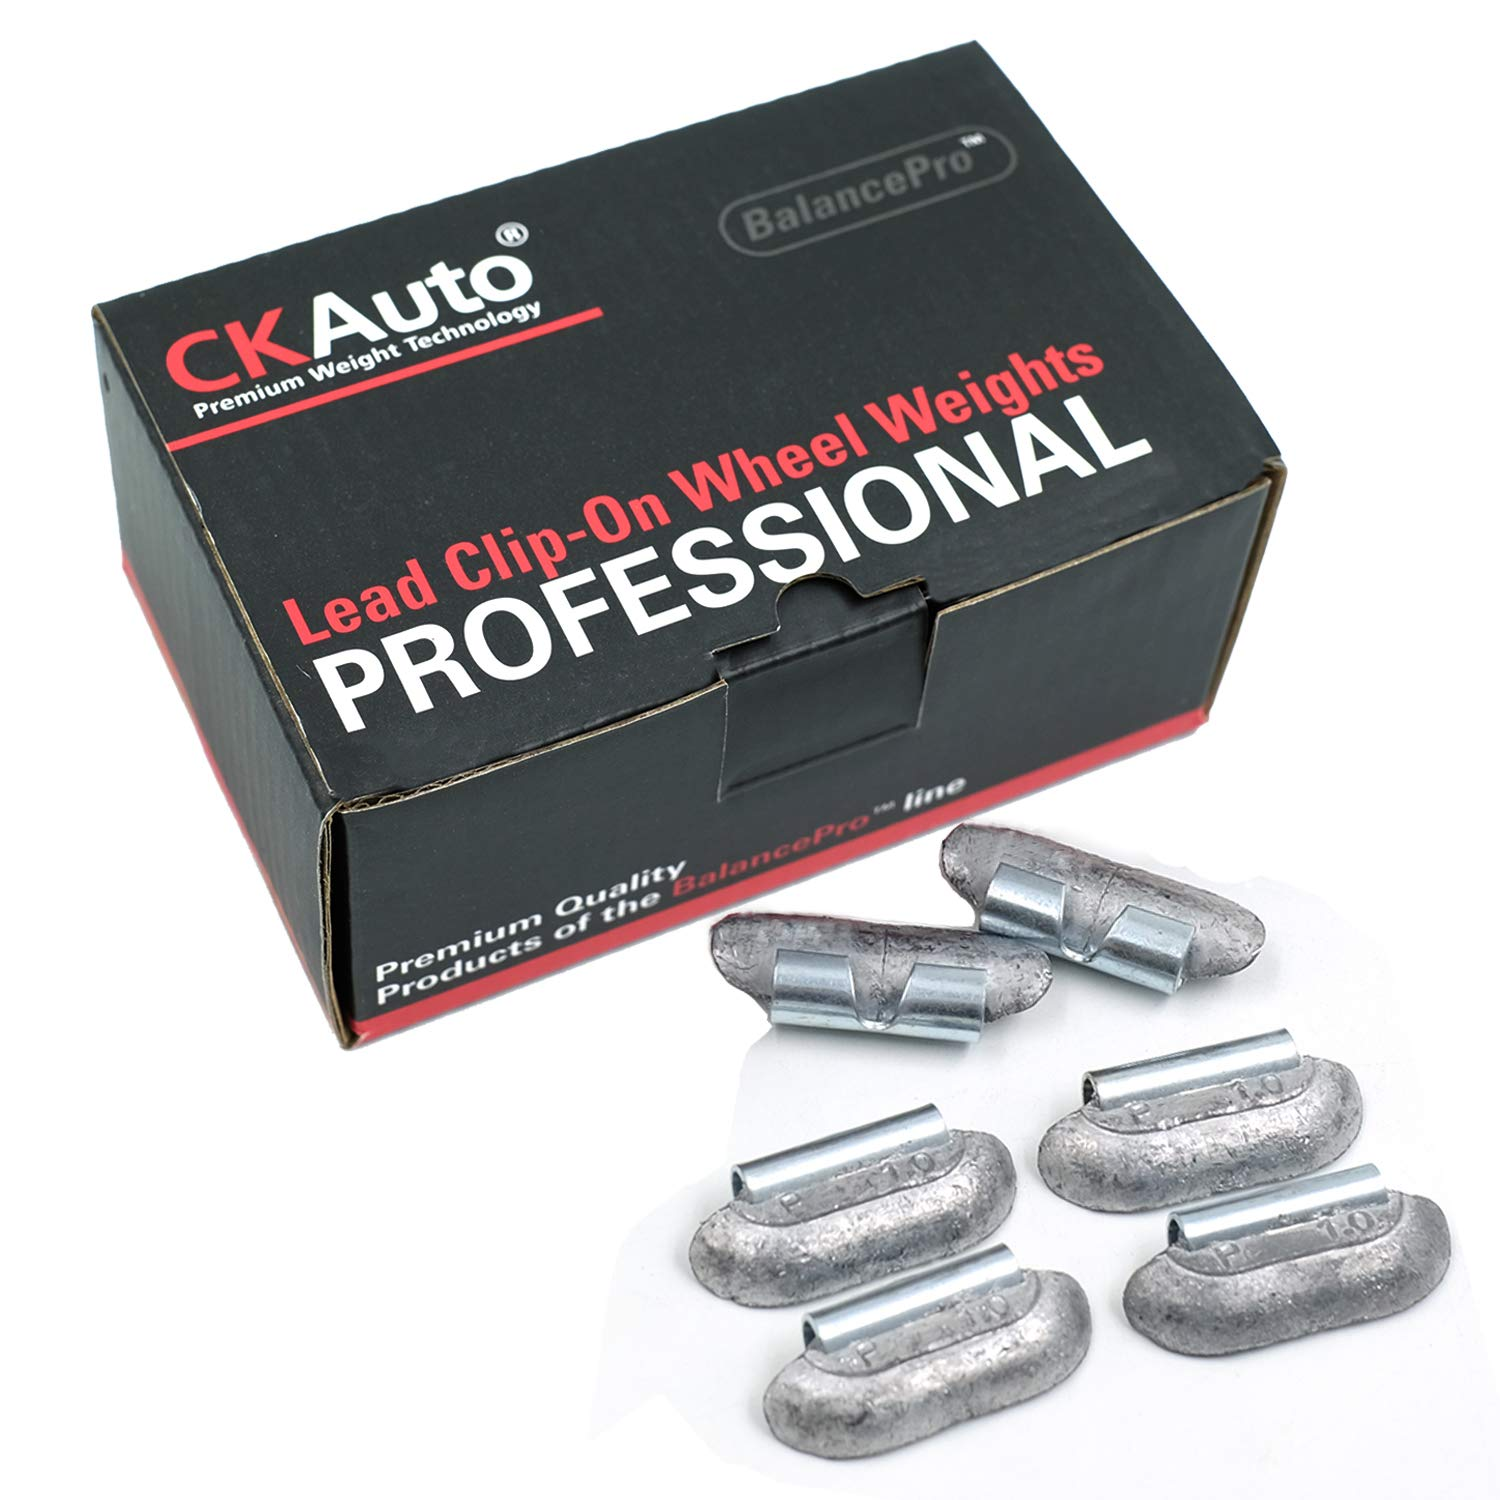 CK Auto P Style 1//2oz Uncoated 50Pcs//Box 0.5oz Lead Clip on Wheel Weights